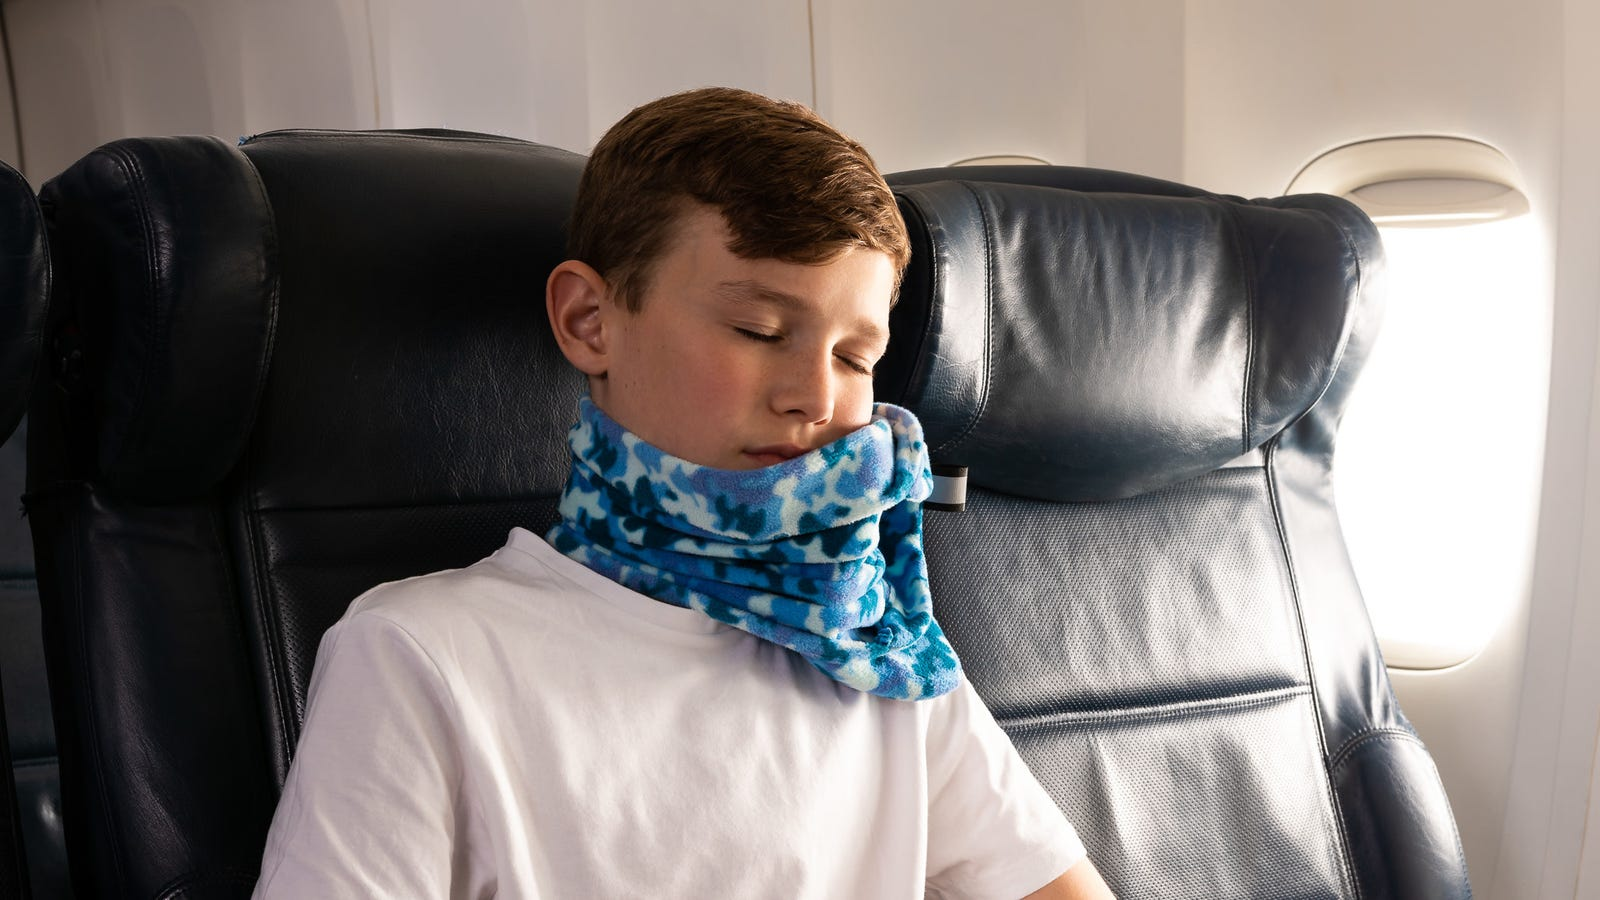 Kids Deserve a Great Travel Pillow Too, So Trtl Made One Just For Them [15% Launch Sale]